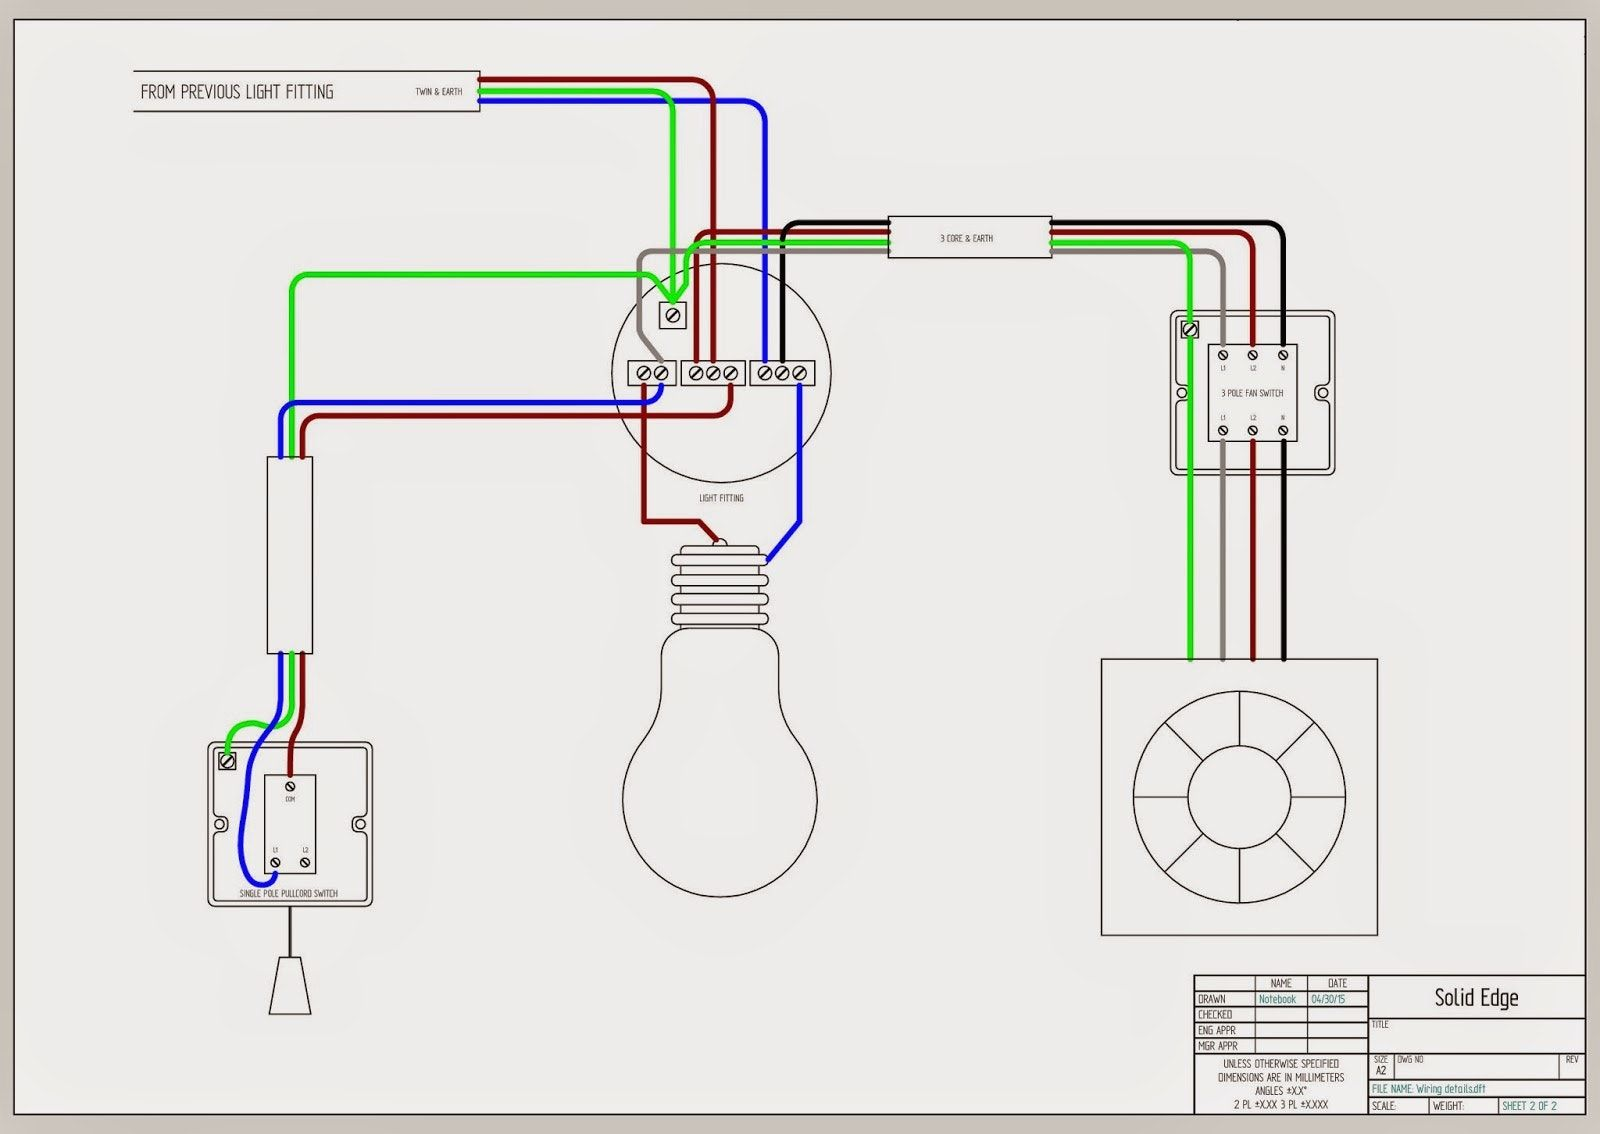 12v Three Way Toggle Switch Wiring Diagram Diagrams For Clarion Vrx775vd Brake Bypass Ecousticscom Image Result Fan Isolator 3 Prong